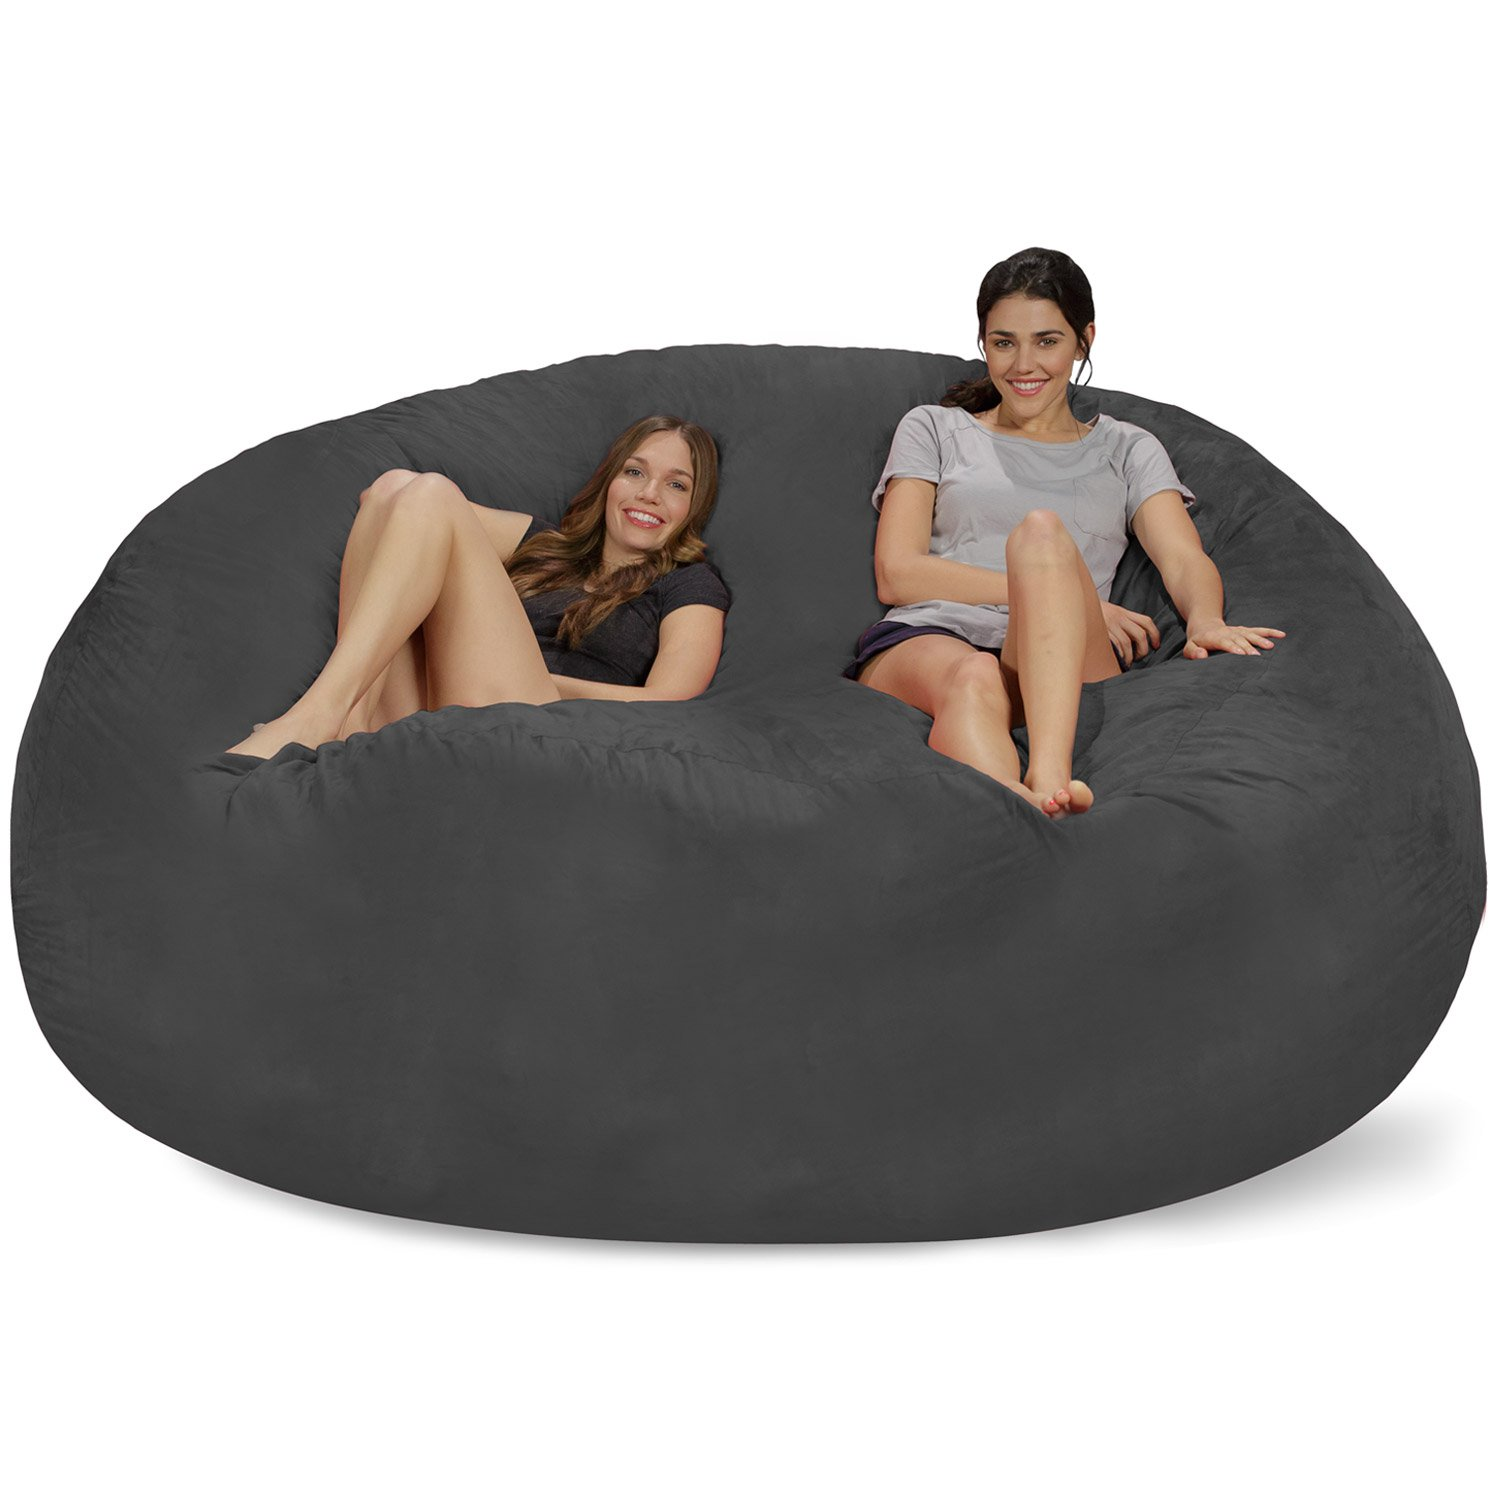 Chill Sack Bean Bag Chair: Giant 8' Memory Foam Furniture Bean Bag - Big Sofa with Soft Micro Fiber Cover - Charcoal